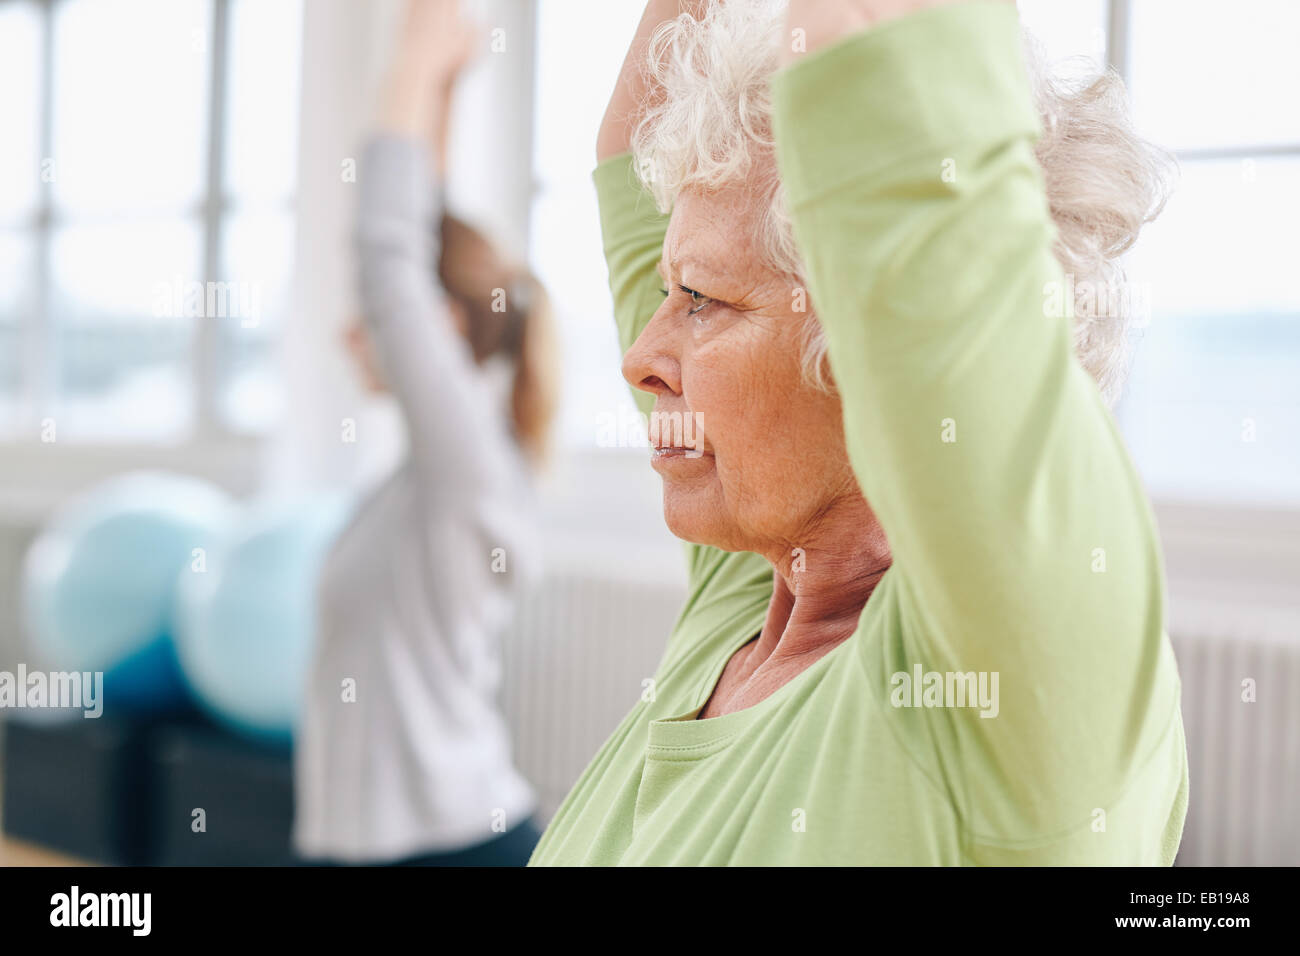 Close-up image of senior woman practicing yoga at gym. Active senior woman exercising at health club with female - Stock Image